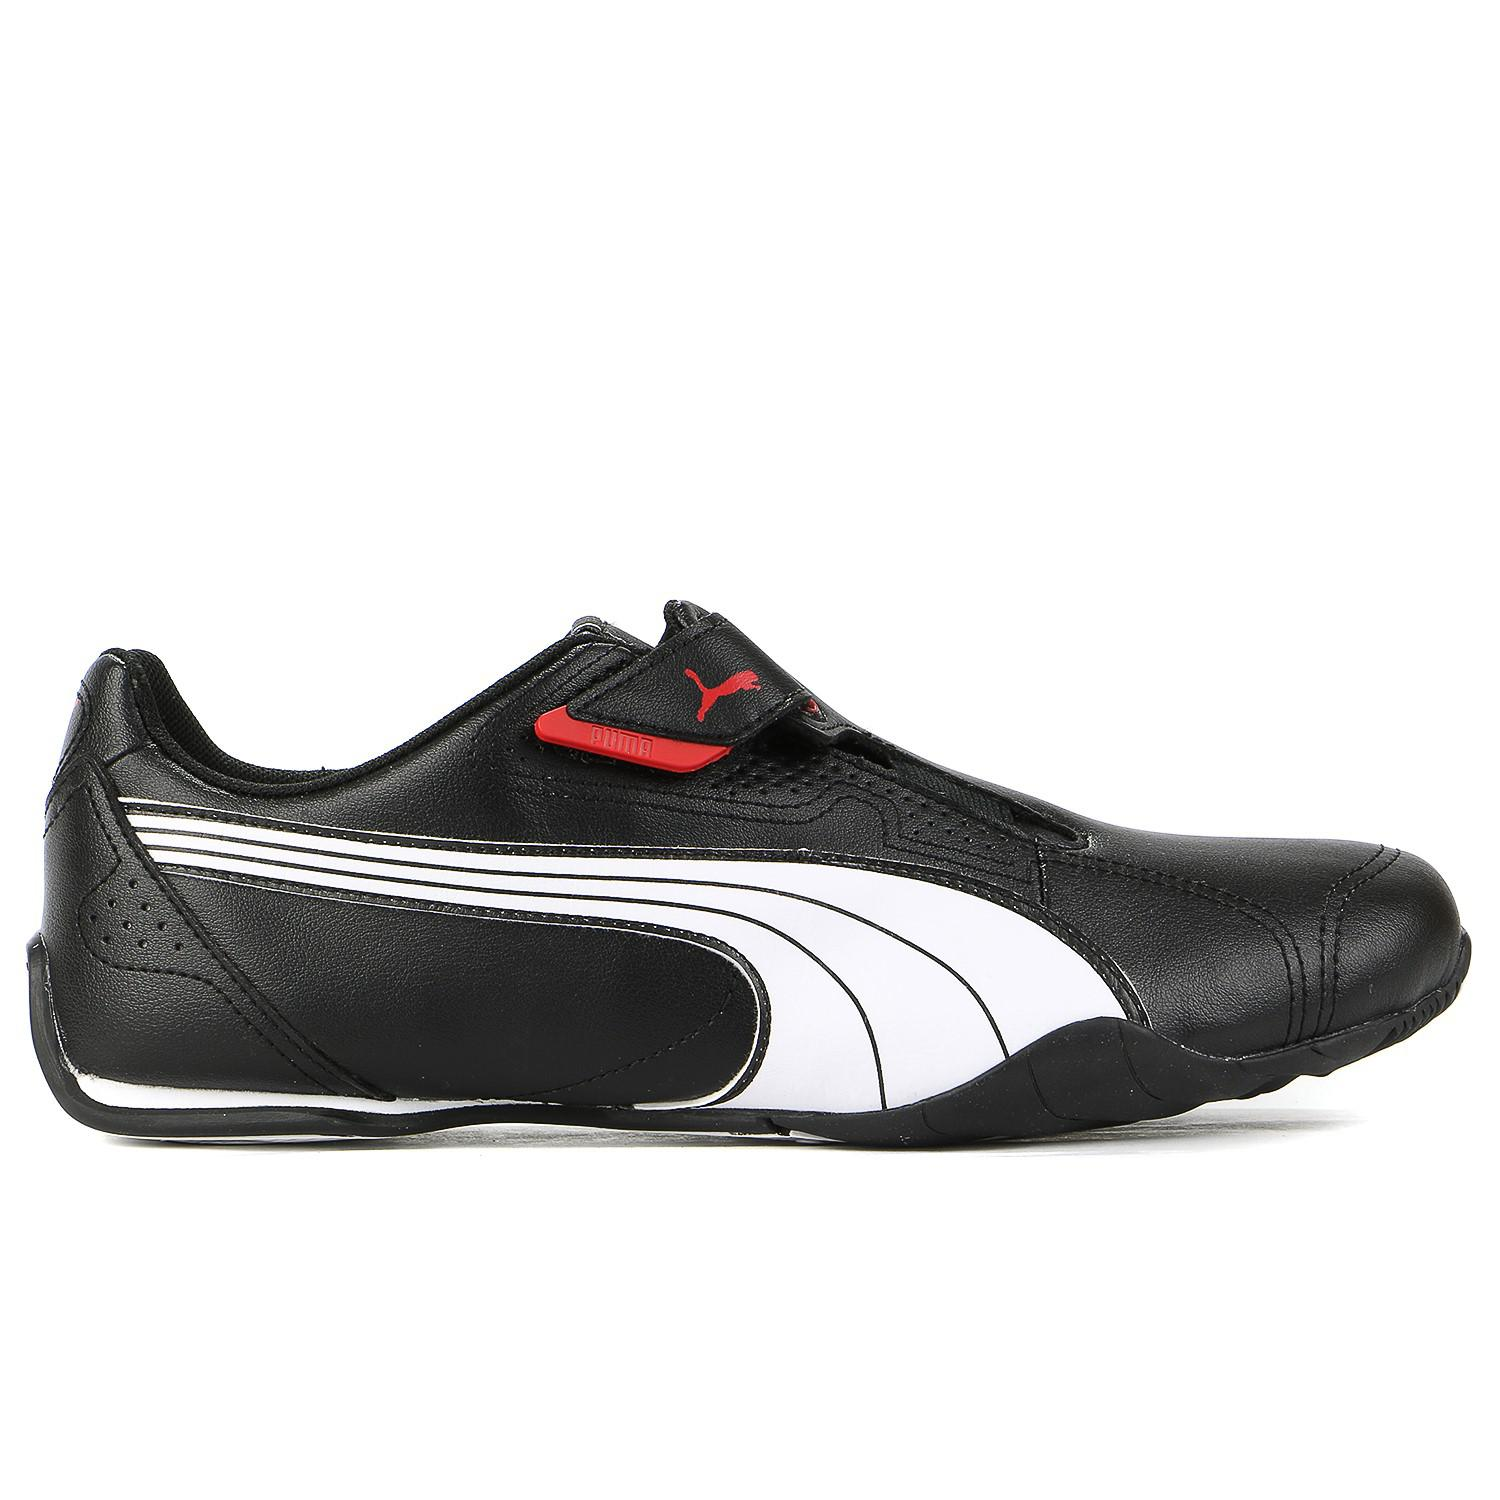 d37fbf55d80 Lyst - Puma Redon Move Shoes 9 in Black for Men